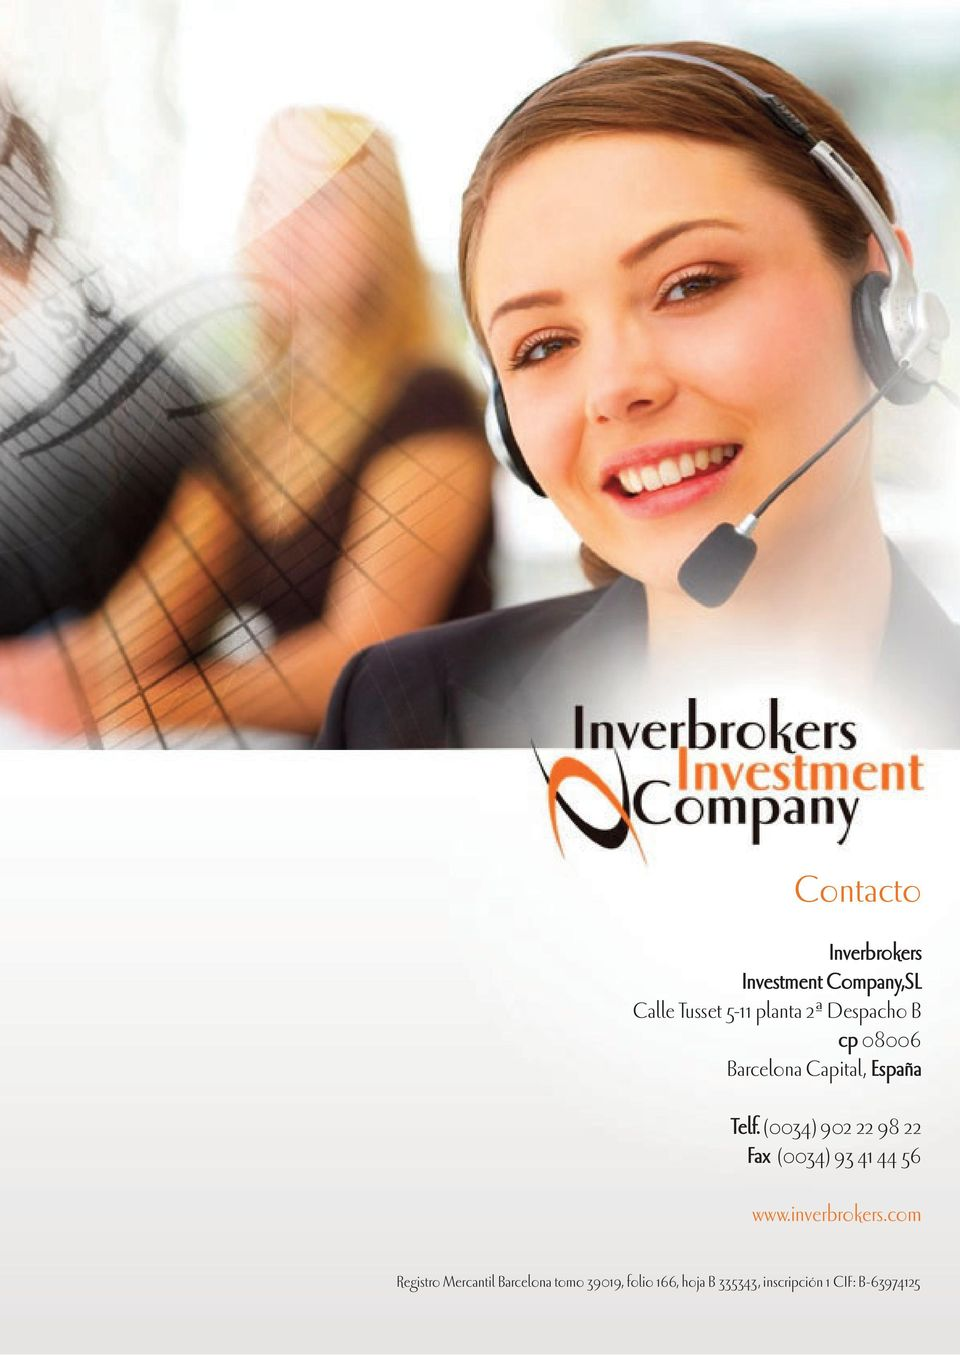 (0034) 902 22 98 22 Fax (0034) 93 41 44 56 www.inverbrokers.